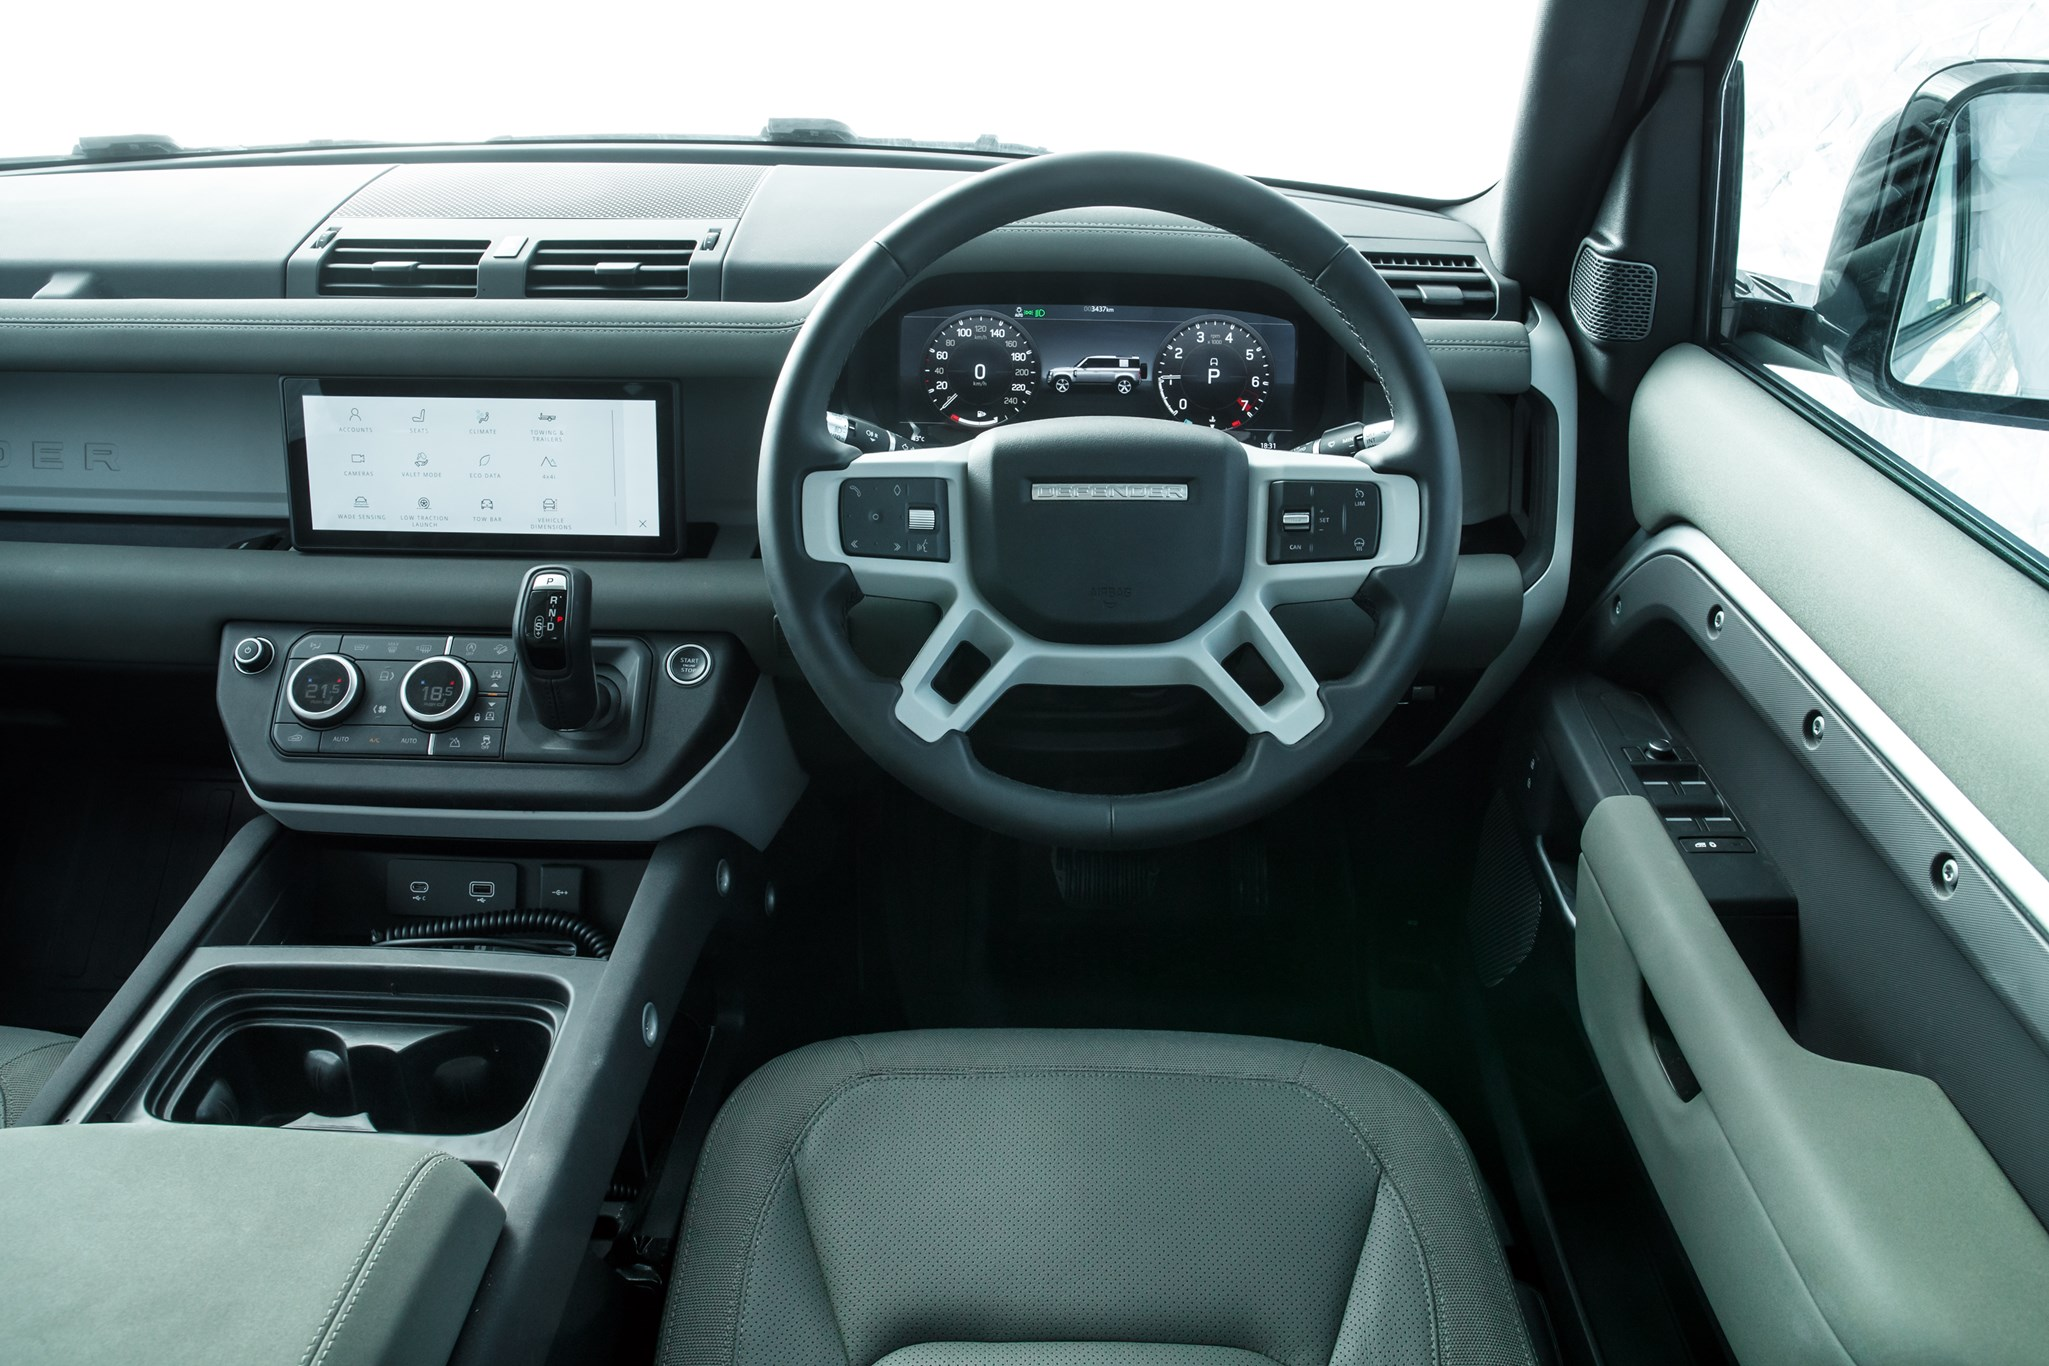 Land Rover Defender (2020) interior view